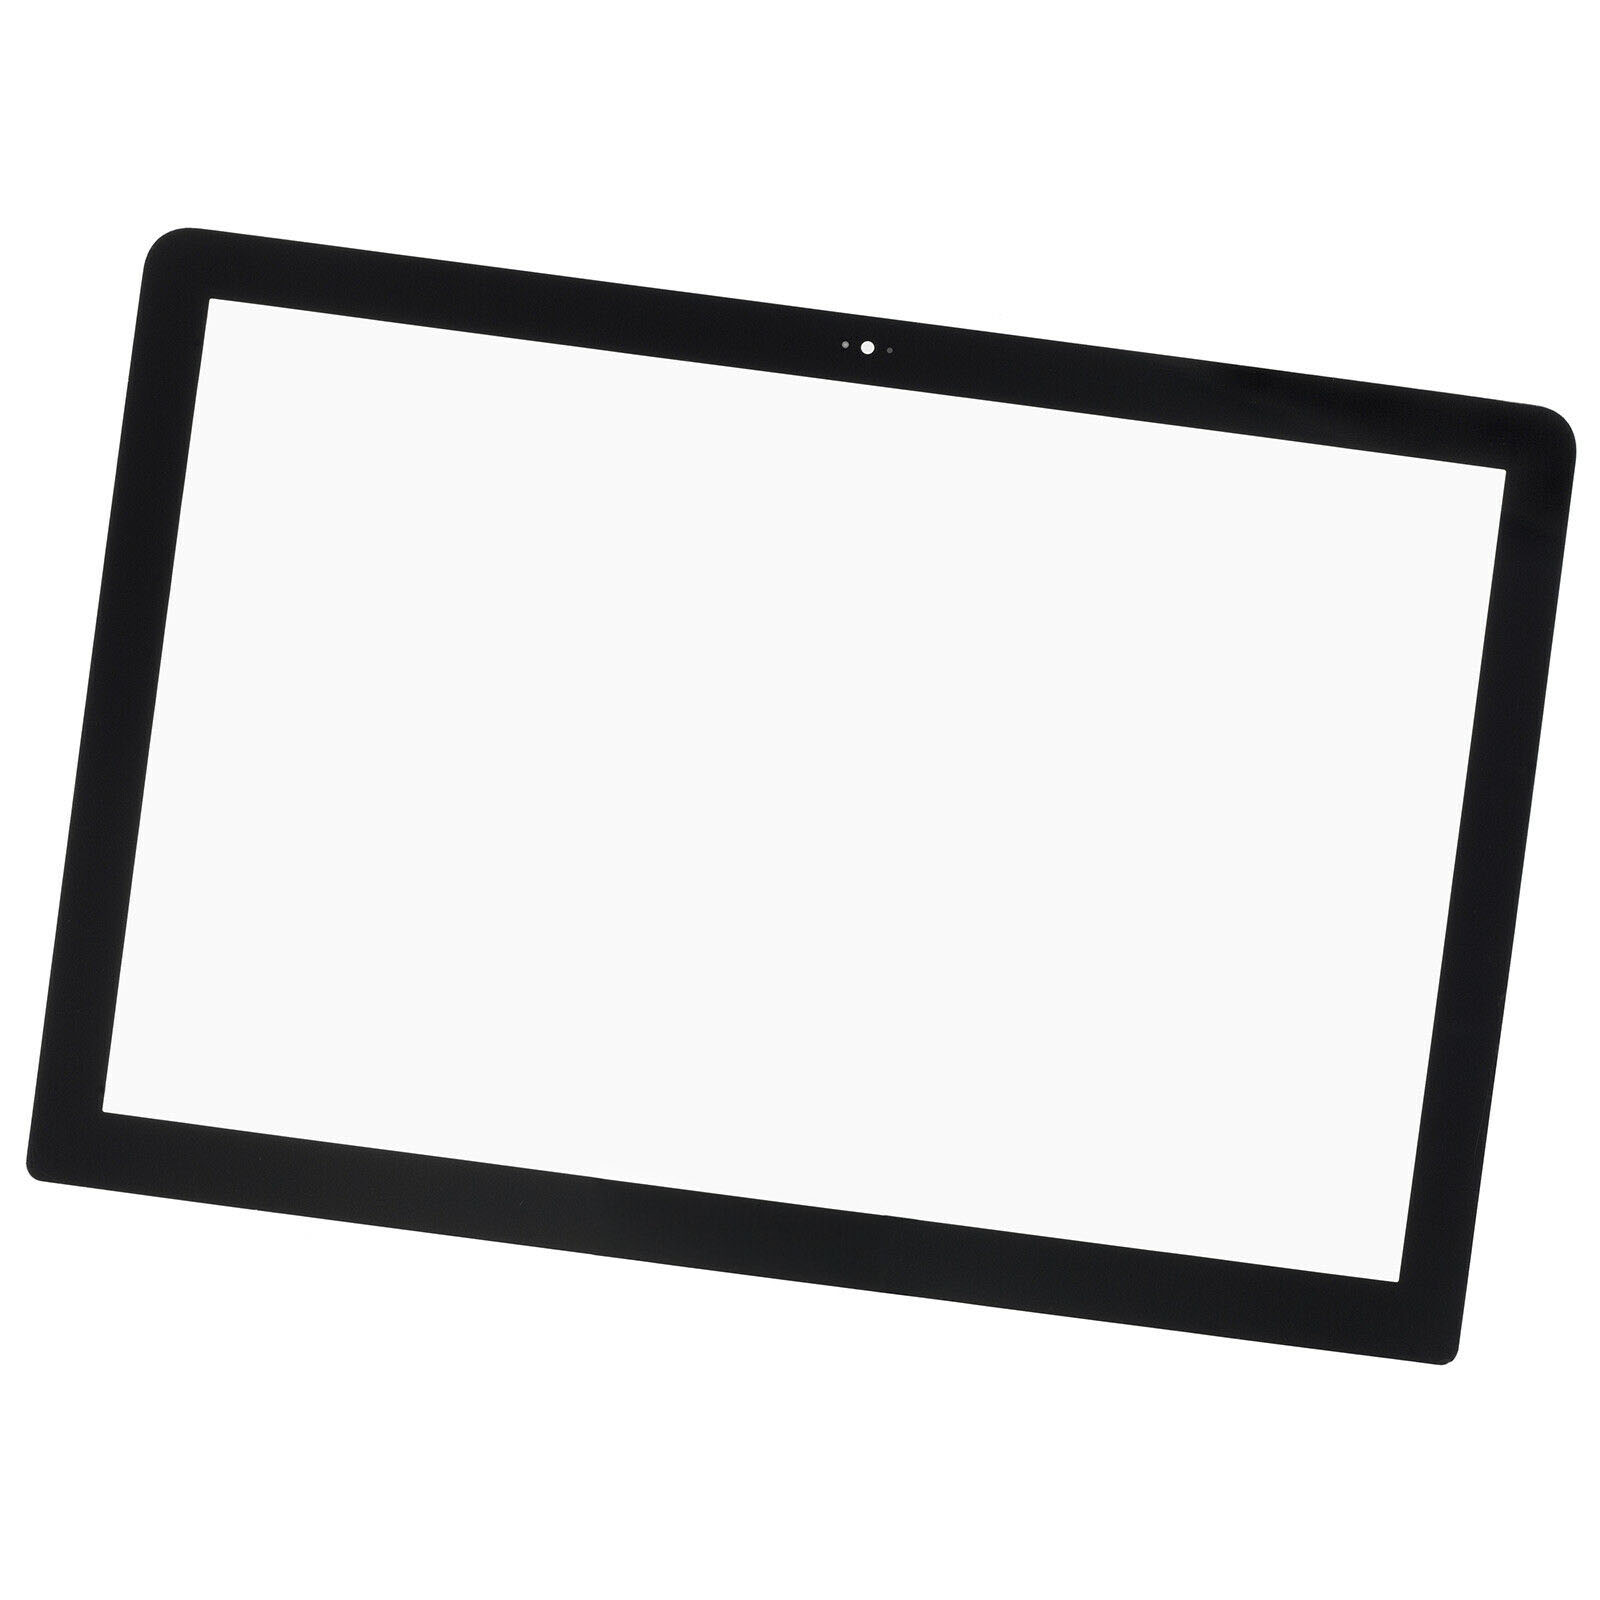 "LPPLY New 13"" Front LCD Glass Screen For Apple Macbook Pro A1278 Touch Digitizer Sensor Replacement Parts 2008-2013 year"